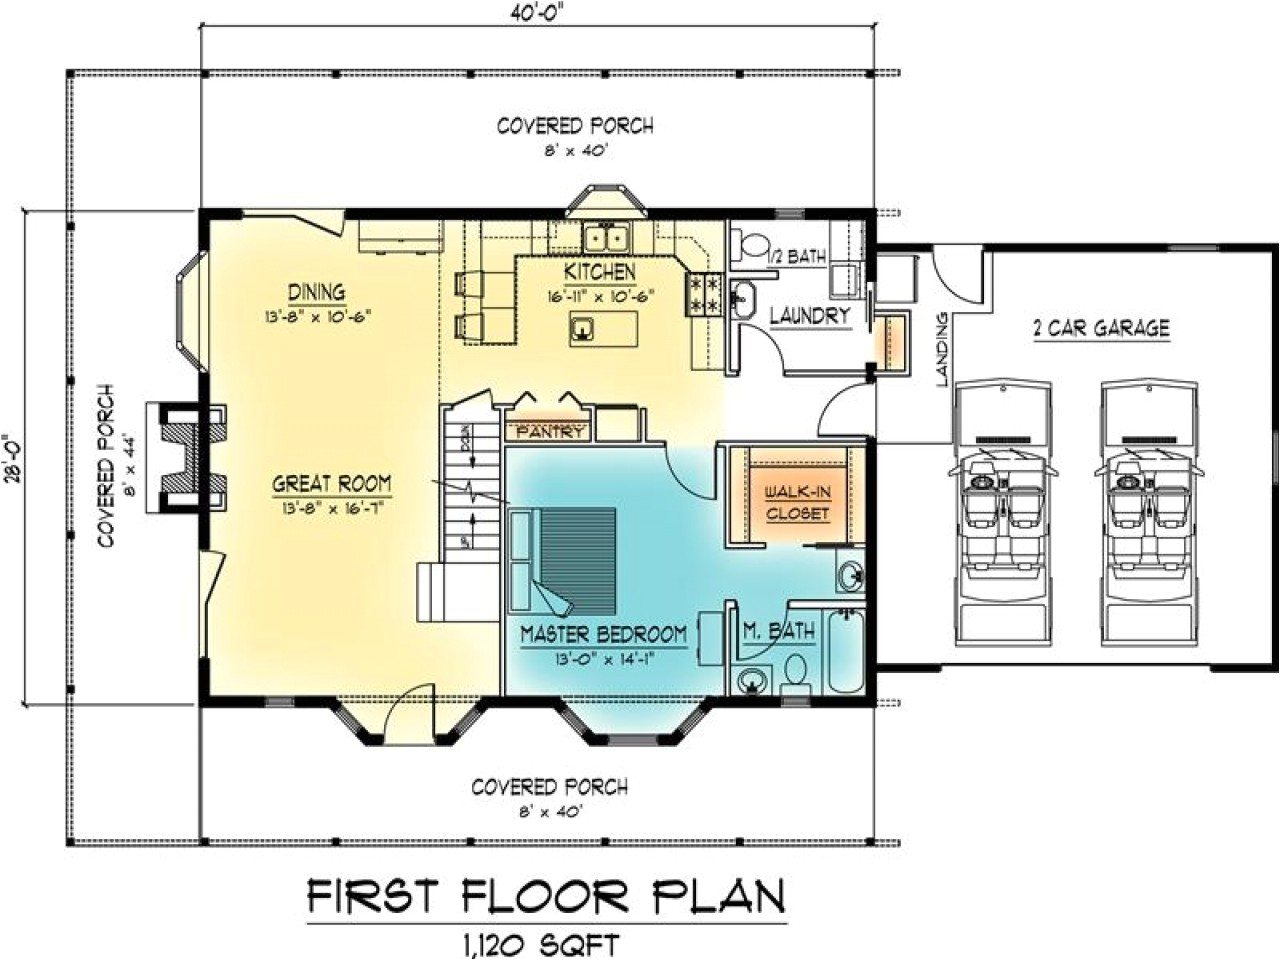 f83325a14948f02c energy efficiency log homes energy effiecient hybrid log home floorplans floor plans